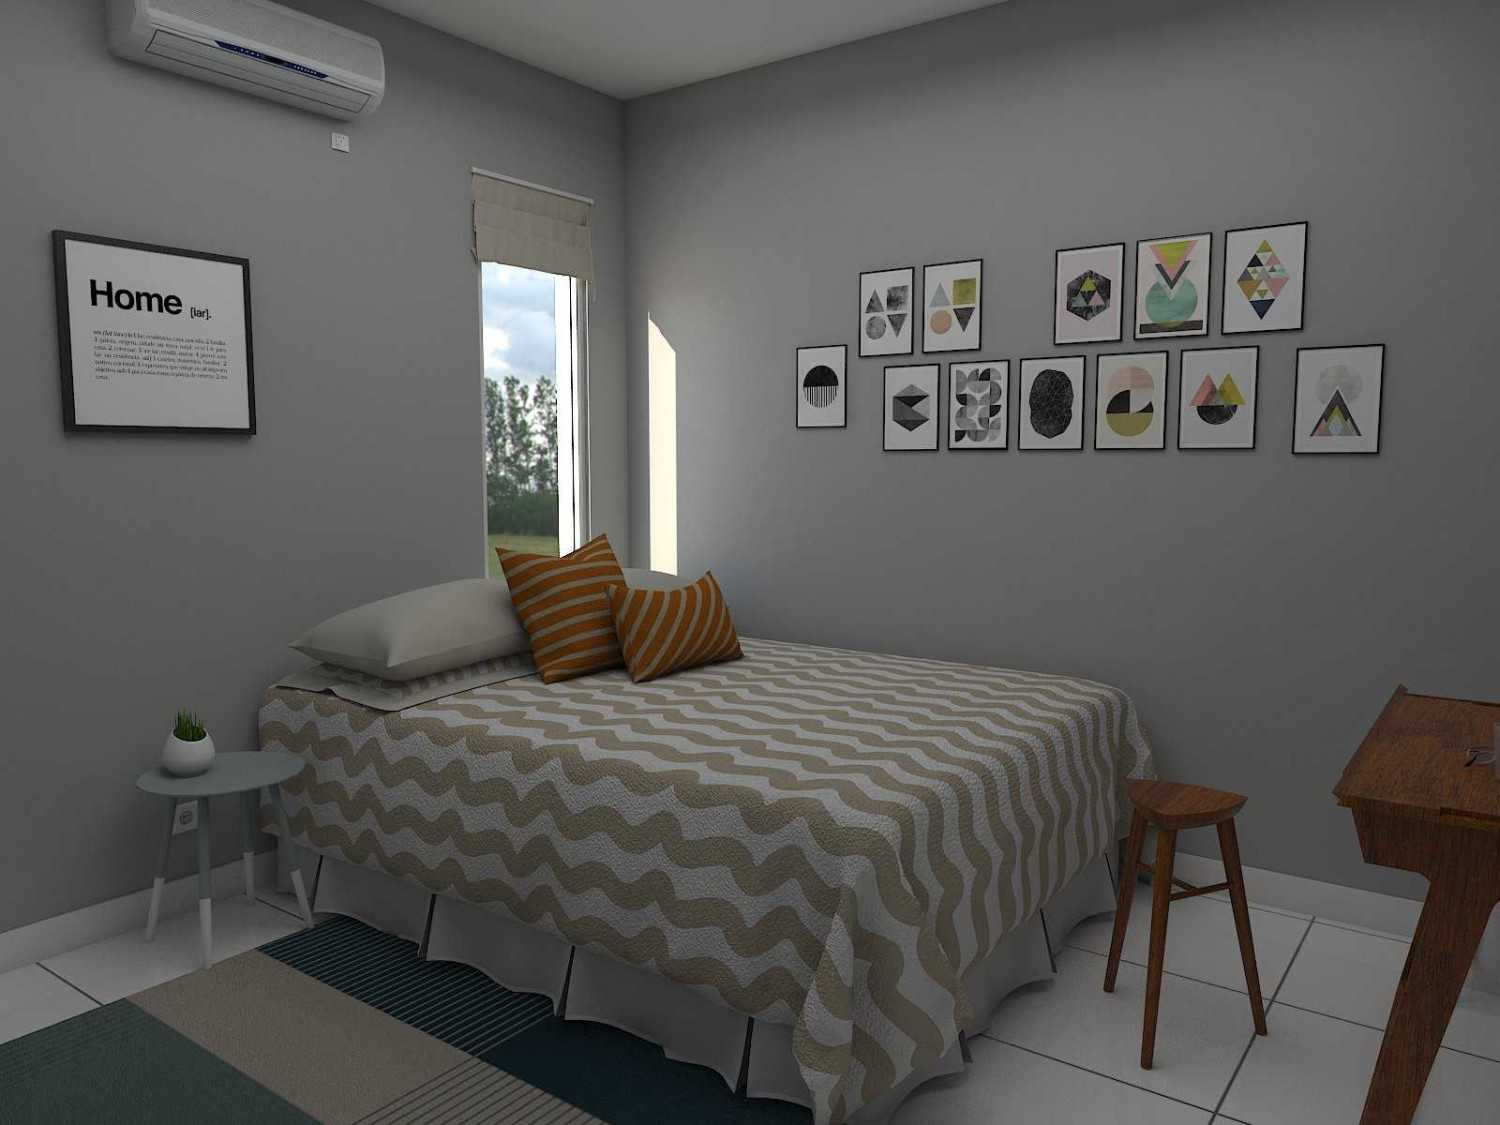 Donnie Marcellino Mr.f's House  Gg. Buntu 2, Jatimelati, Pondokmelati, Kota Bks, Jawa Barat 17415, Indonesia Guest Bedroom Design Kontemporer 30167